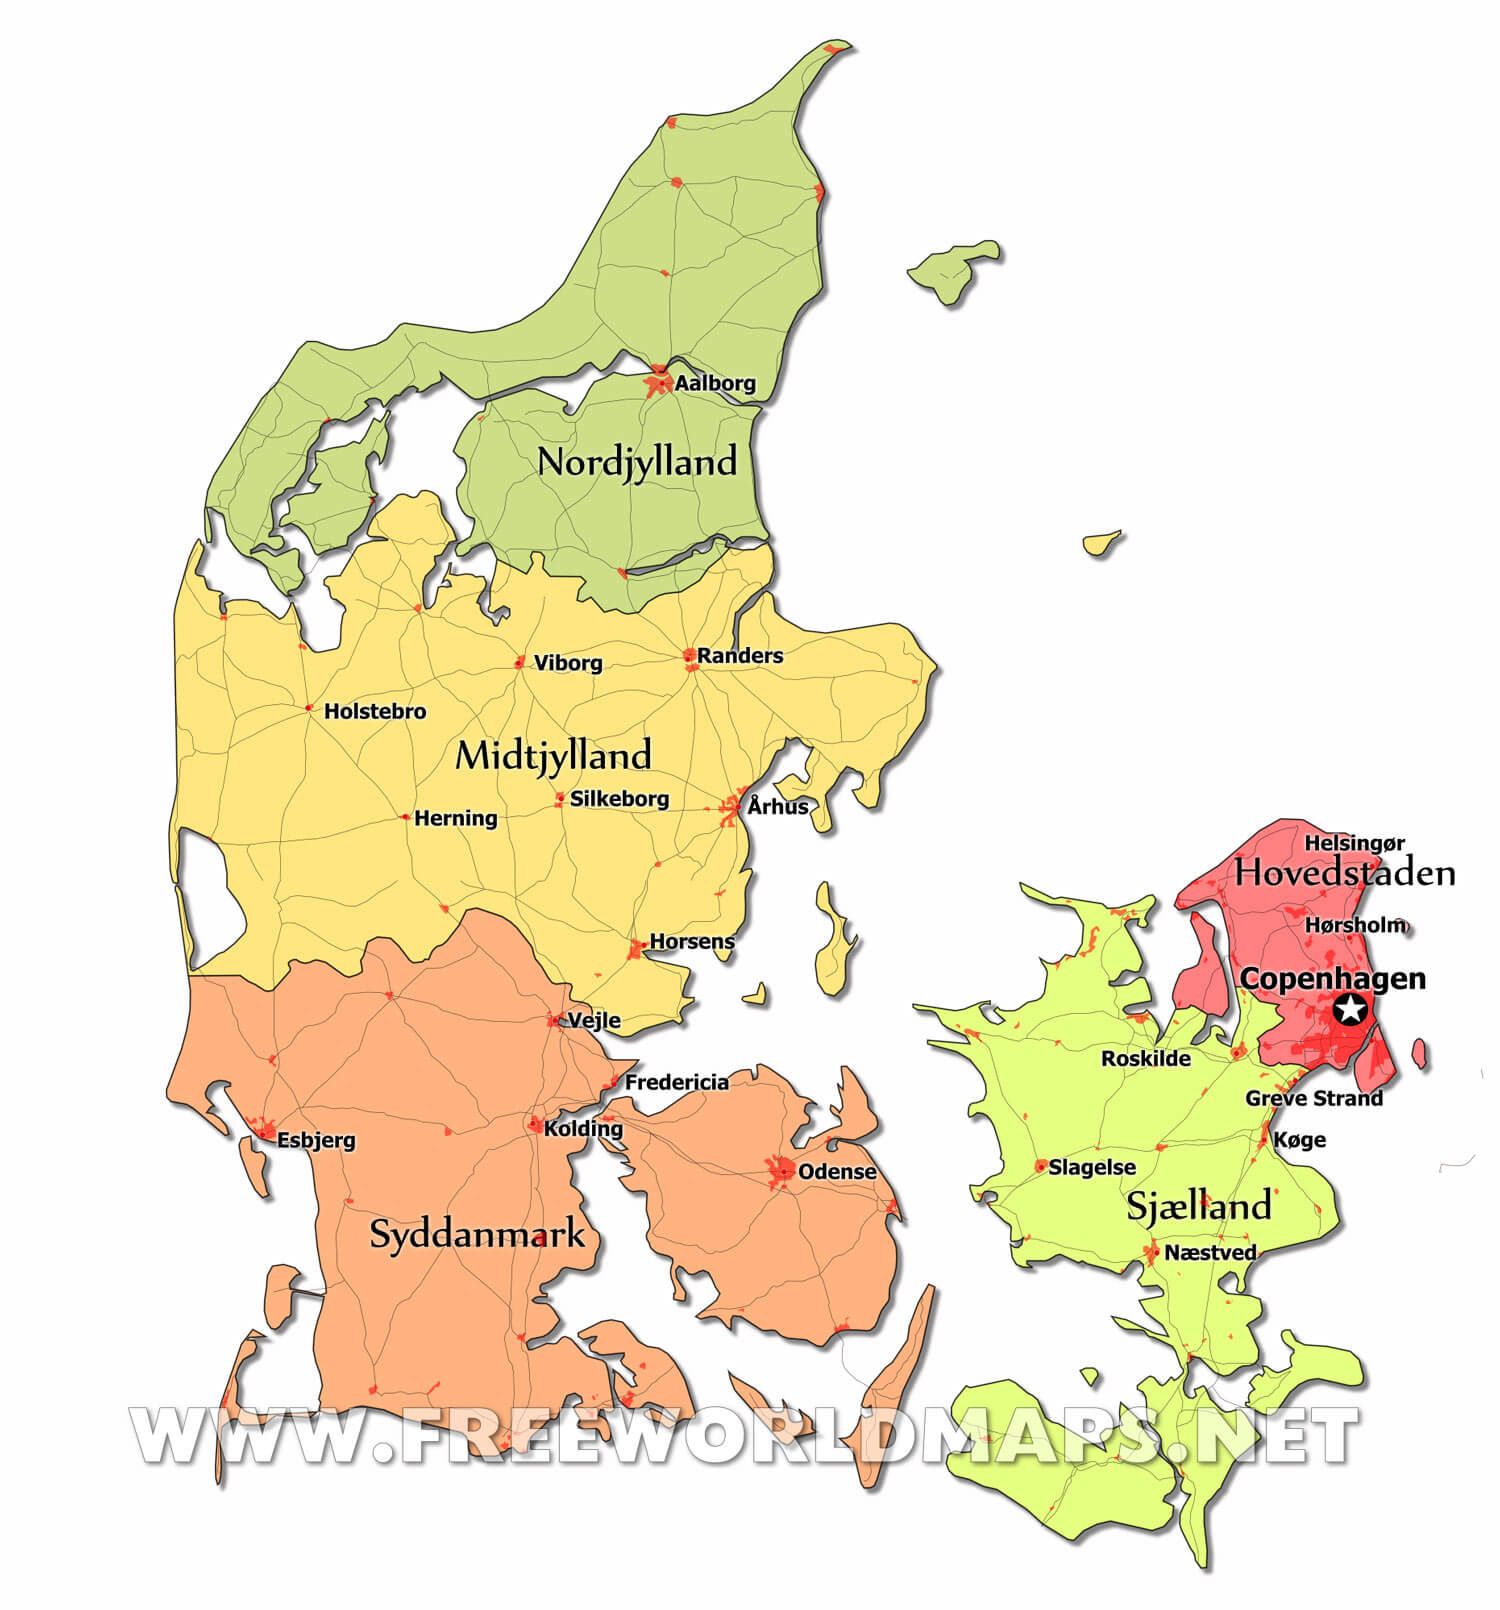 Denmark Maps by Freeworldmapsnet